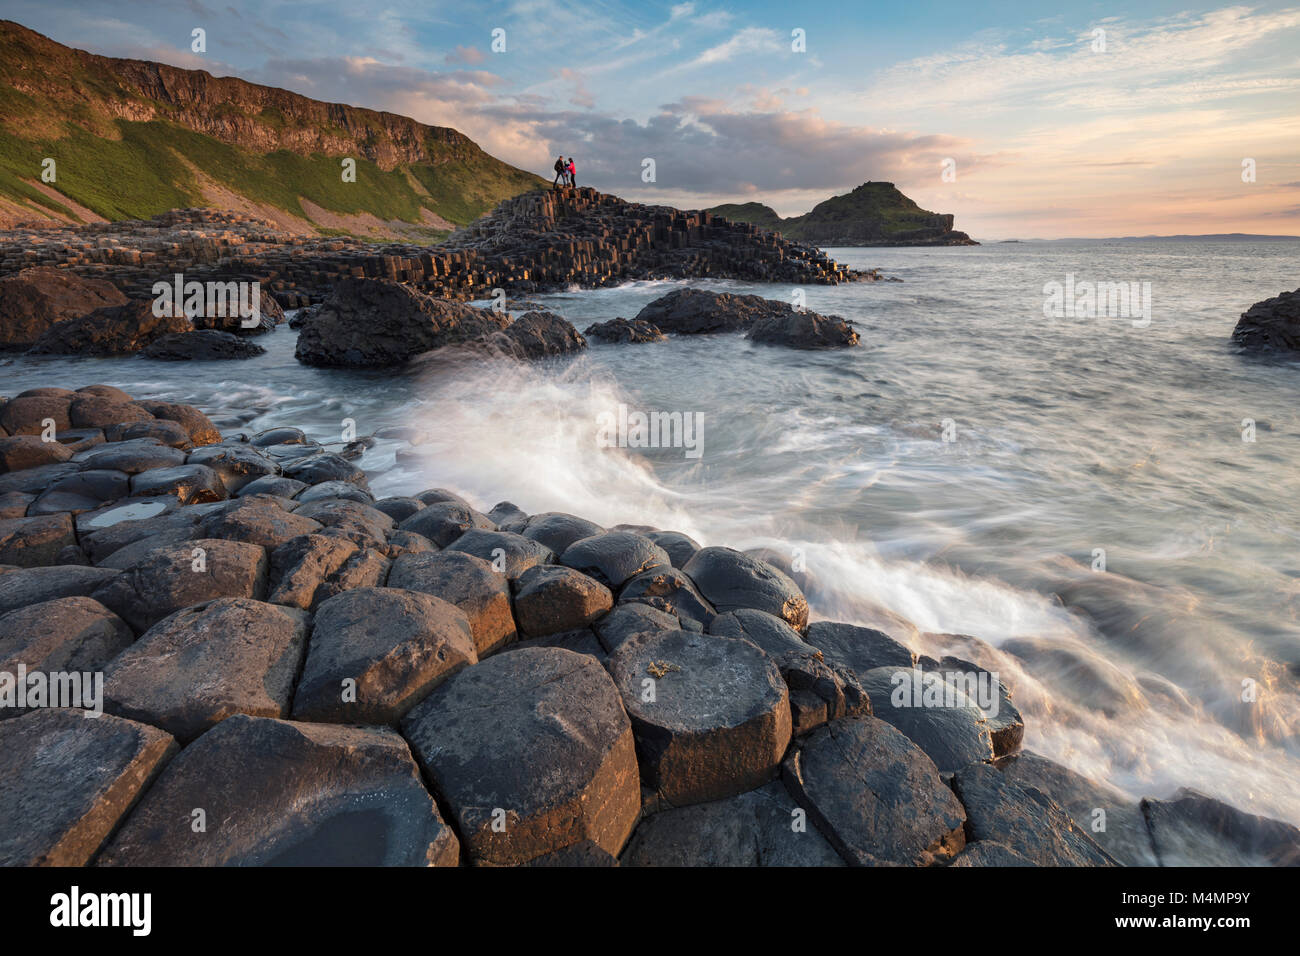 Evening at the Giant's Causeway, Country Antrim, Northern Ireland. - Stock Image